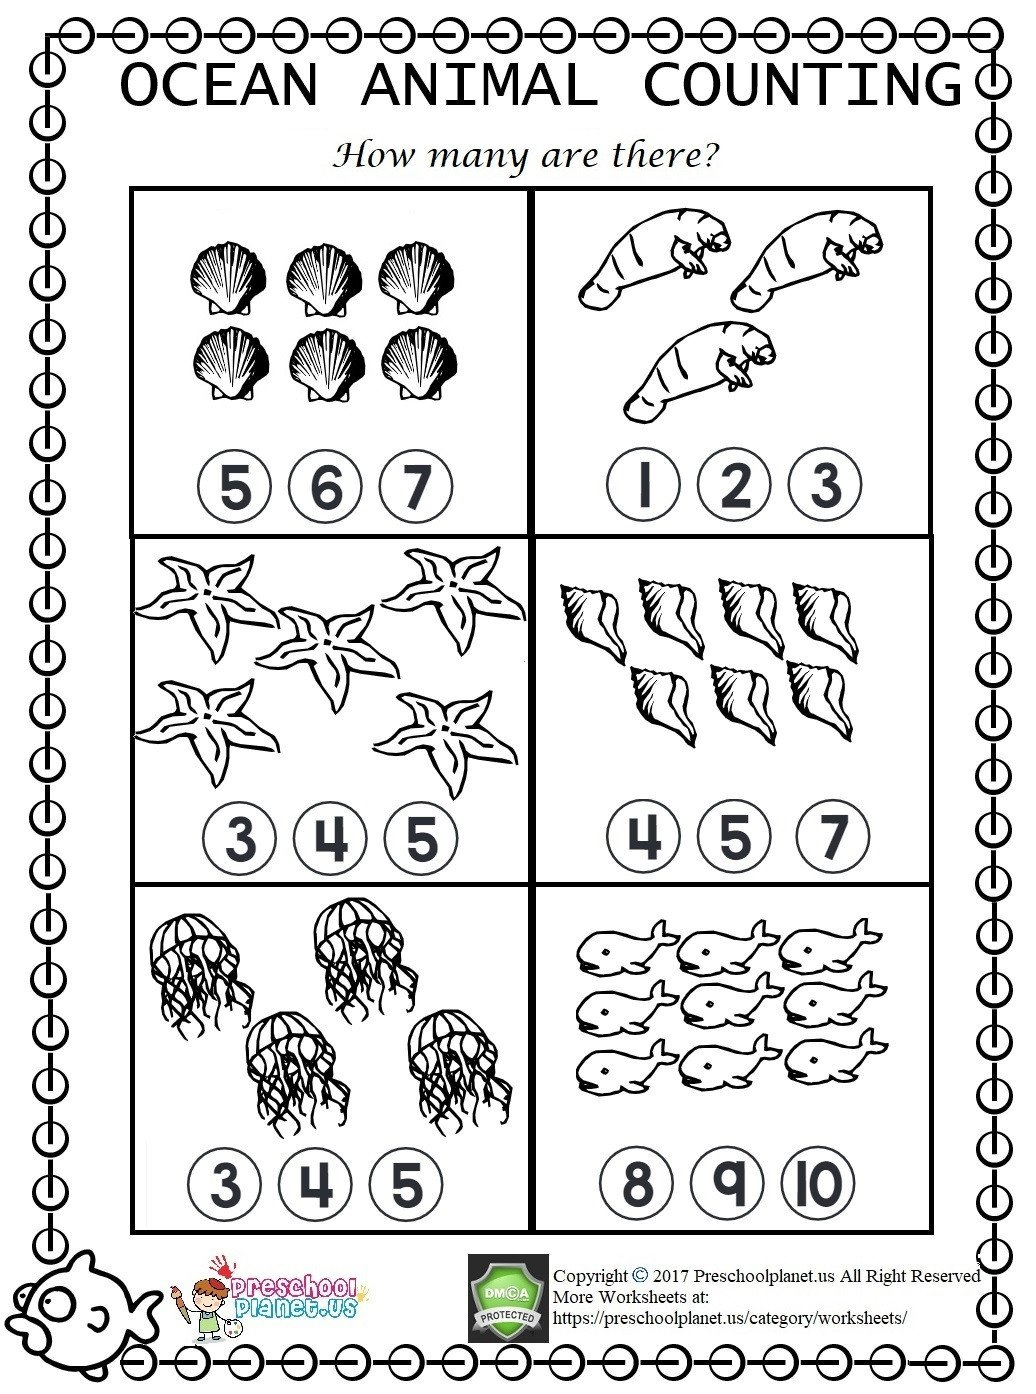 Hidden Animal Pictures Worksheets Sea Animal Counting Worksheet – Preschoolplanet